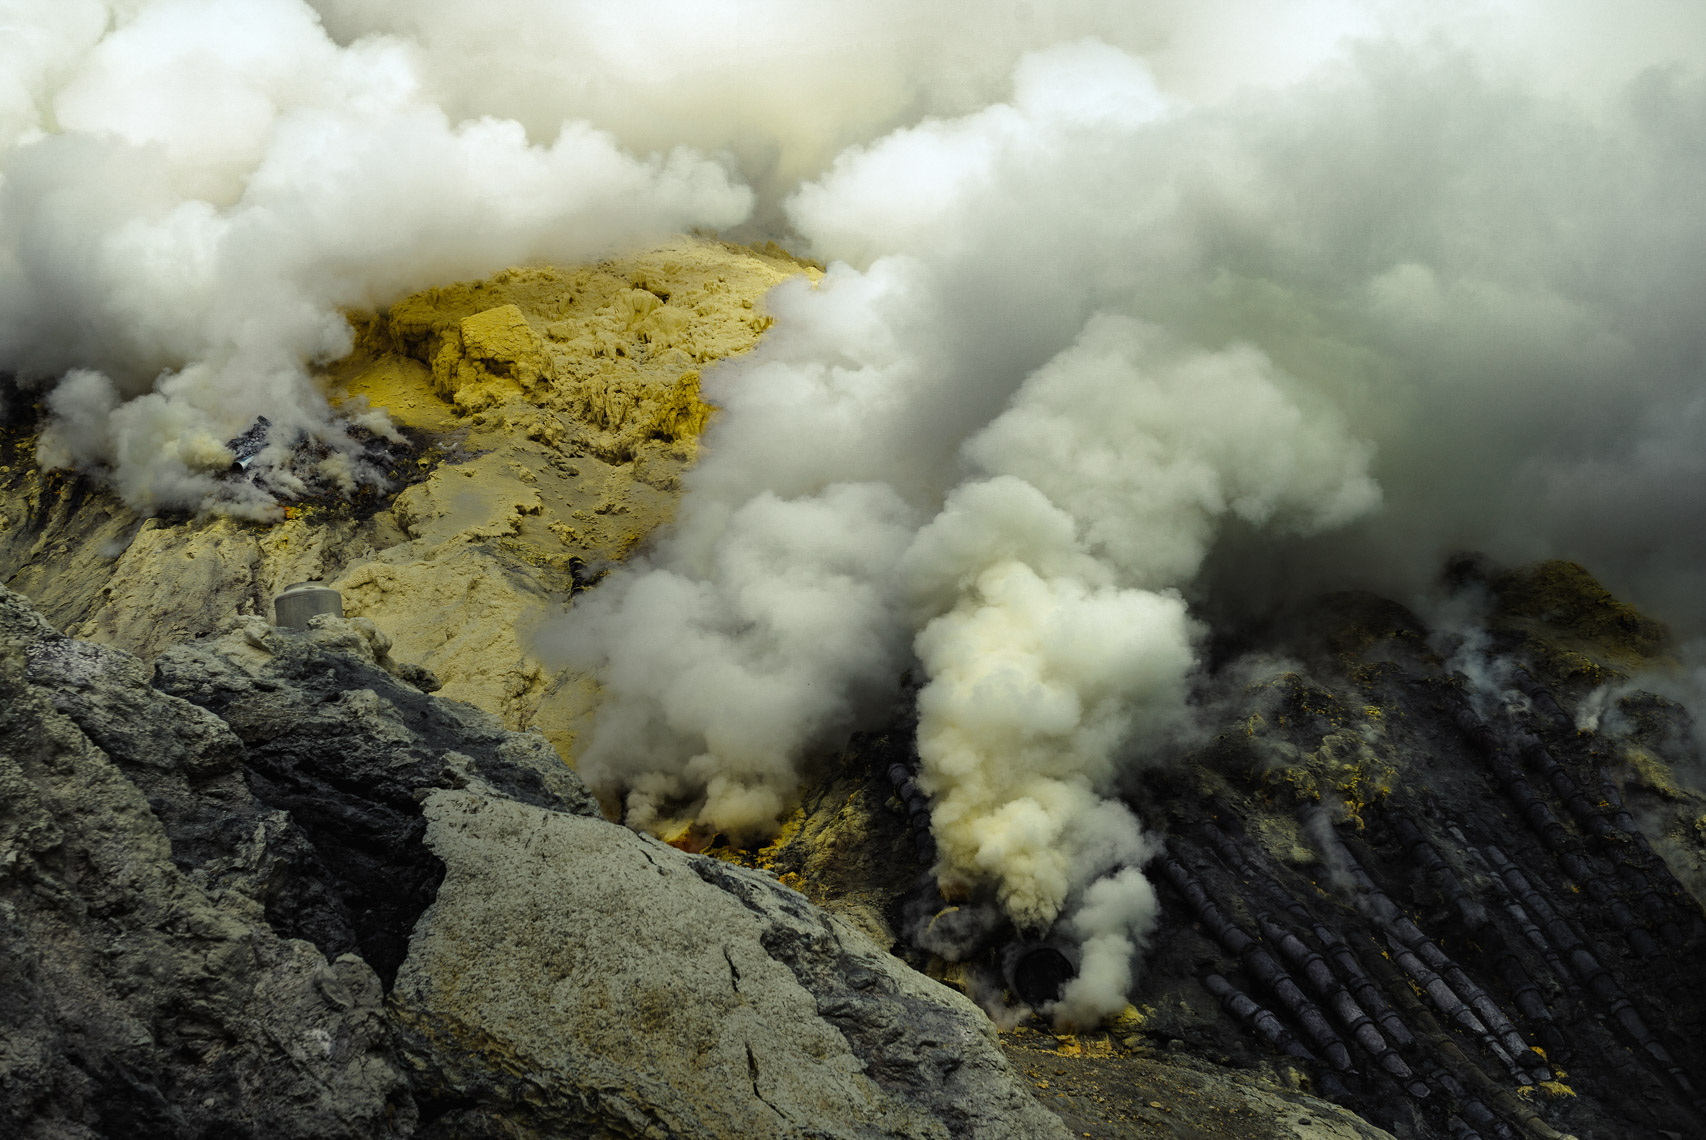 richard-schabetsberger-ijen-volcano-java-indonesia-003